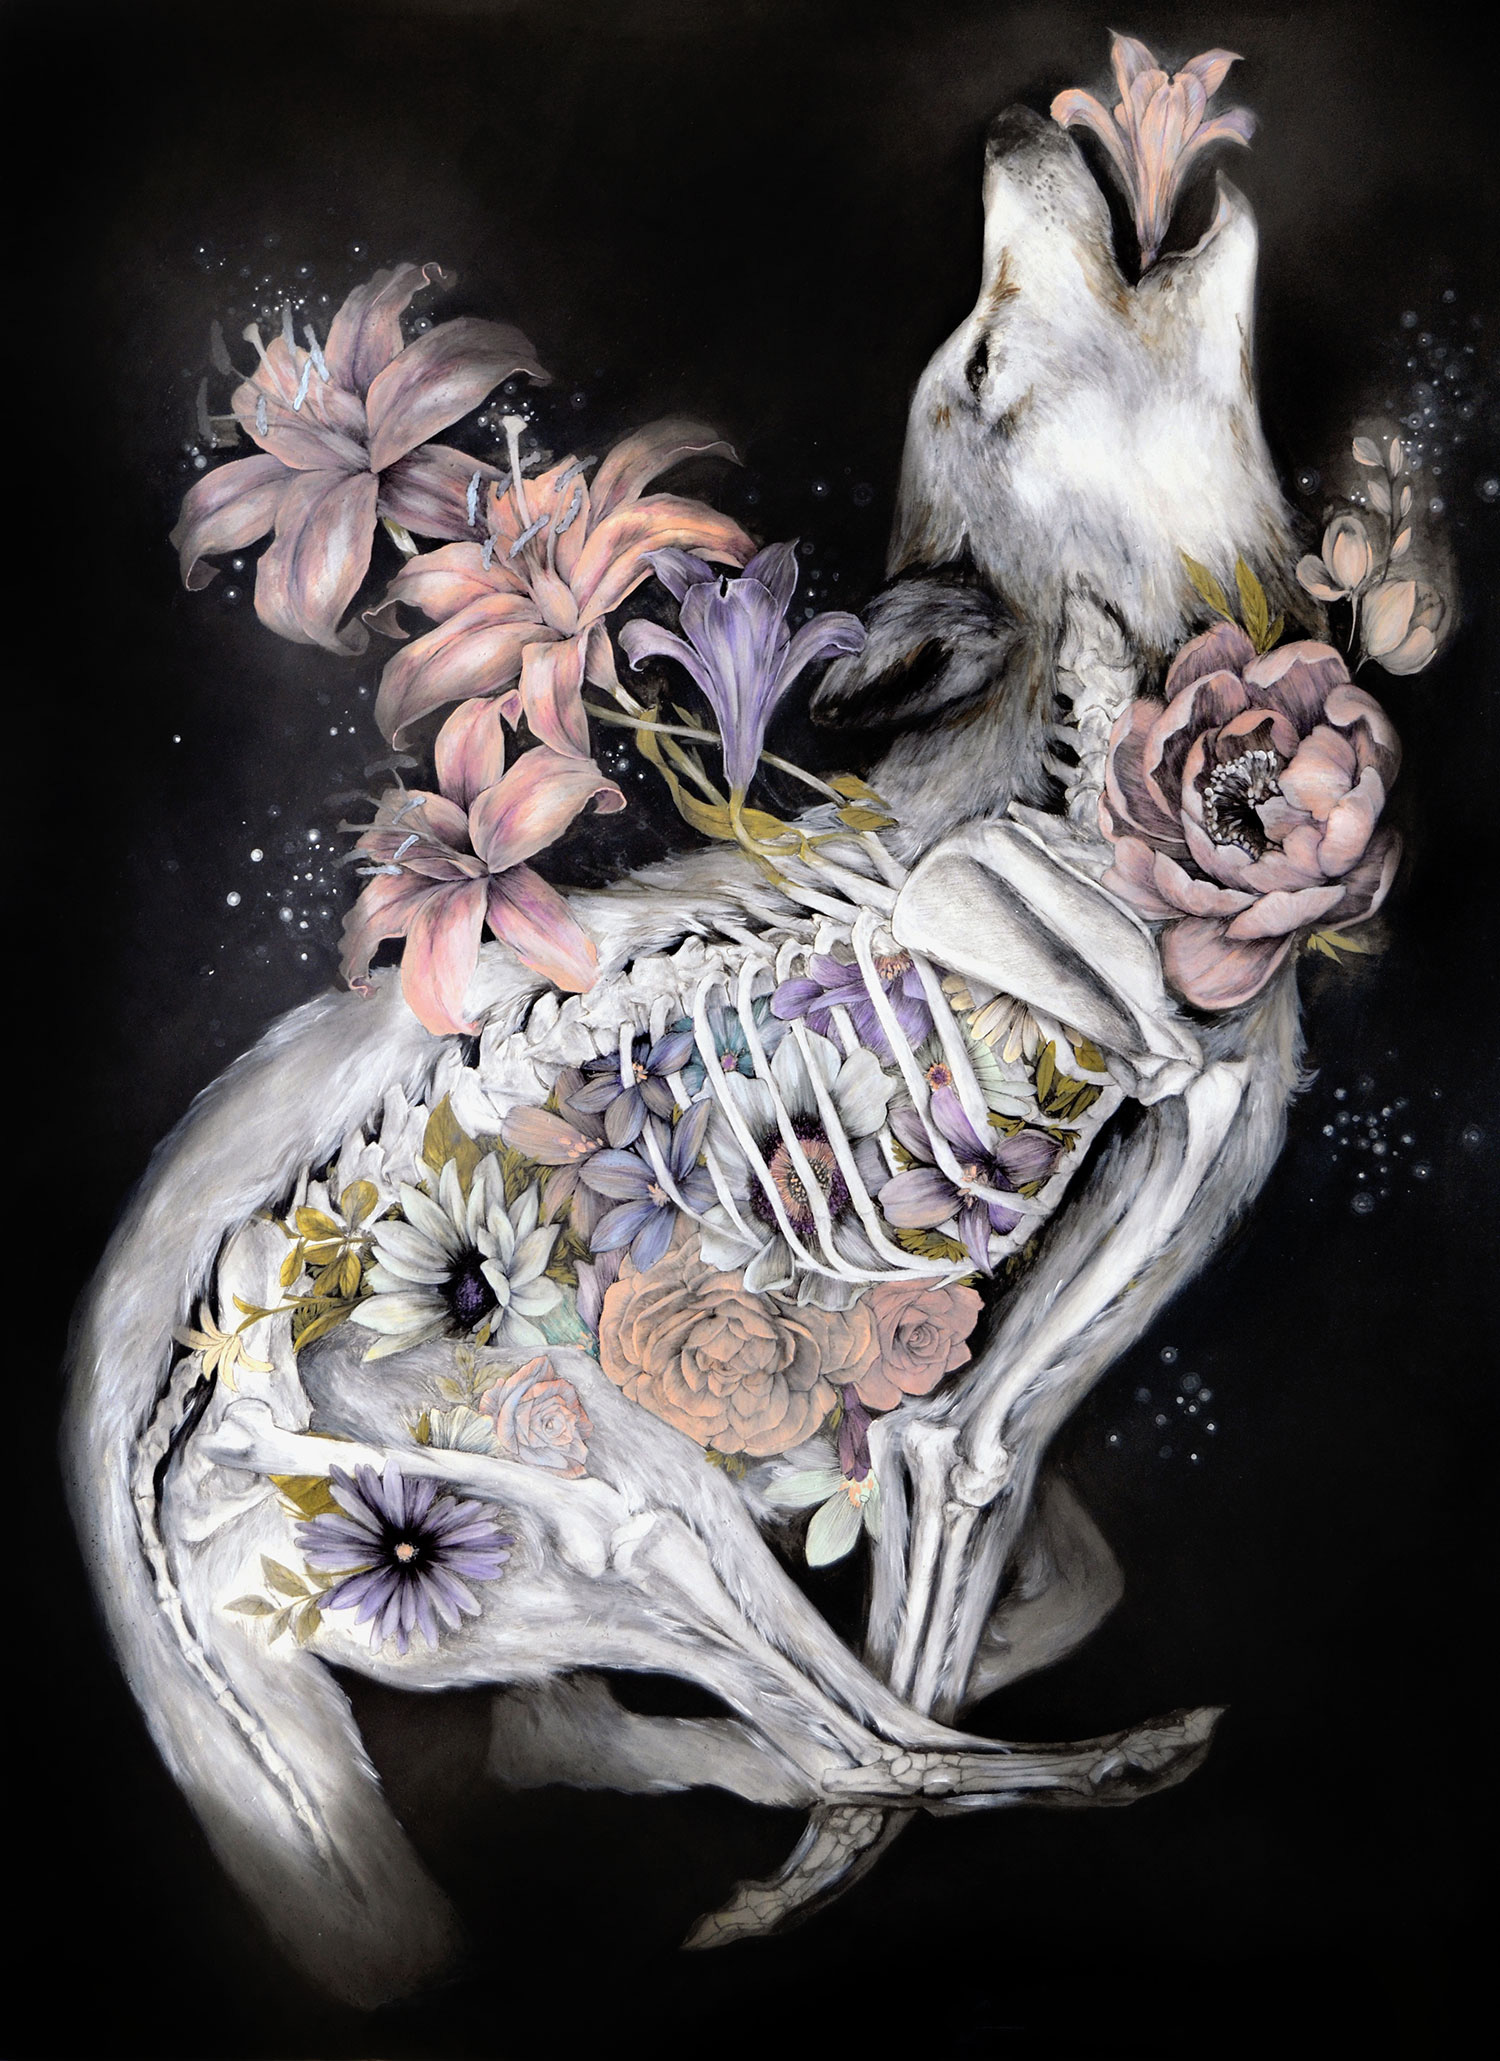 Mimesis In New Anatomical Paintings By Nunzio Paci